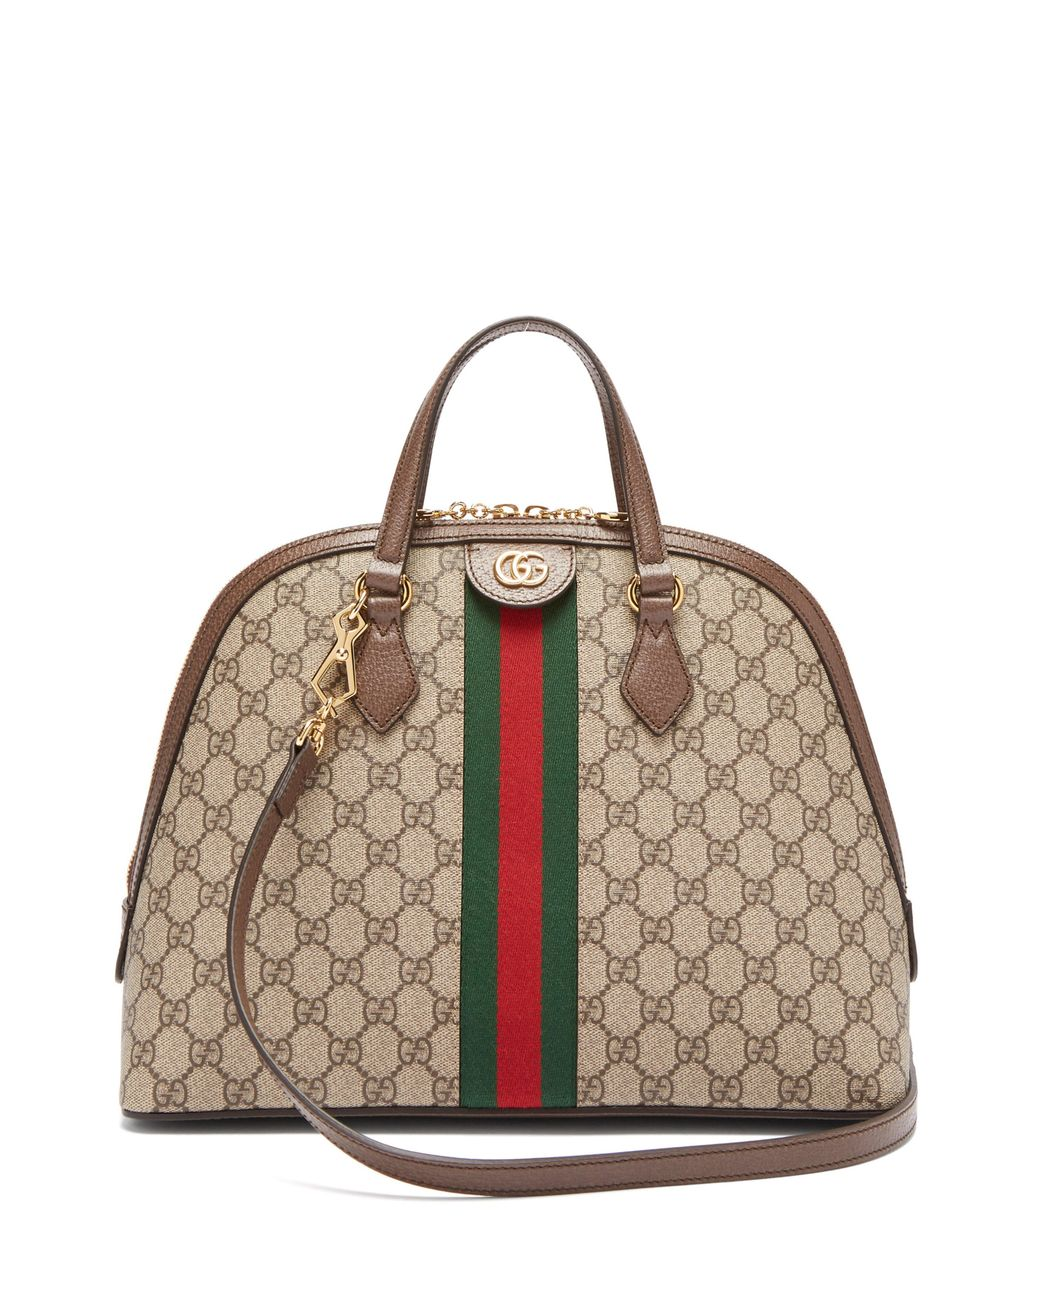 7cf8bf9d9 Gucci Ophidia Gg Supreme Tote Bag - Lyst